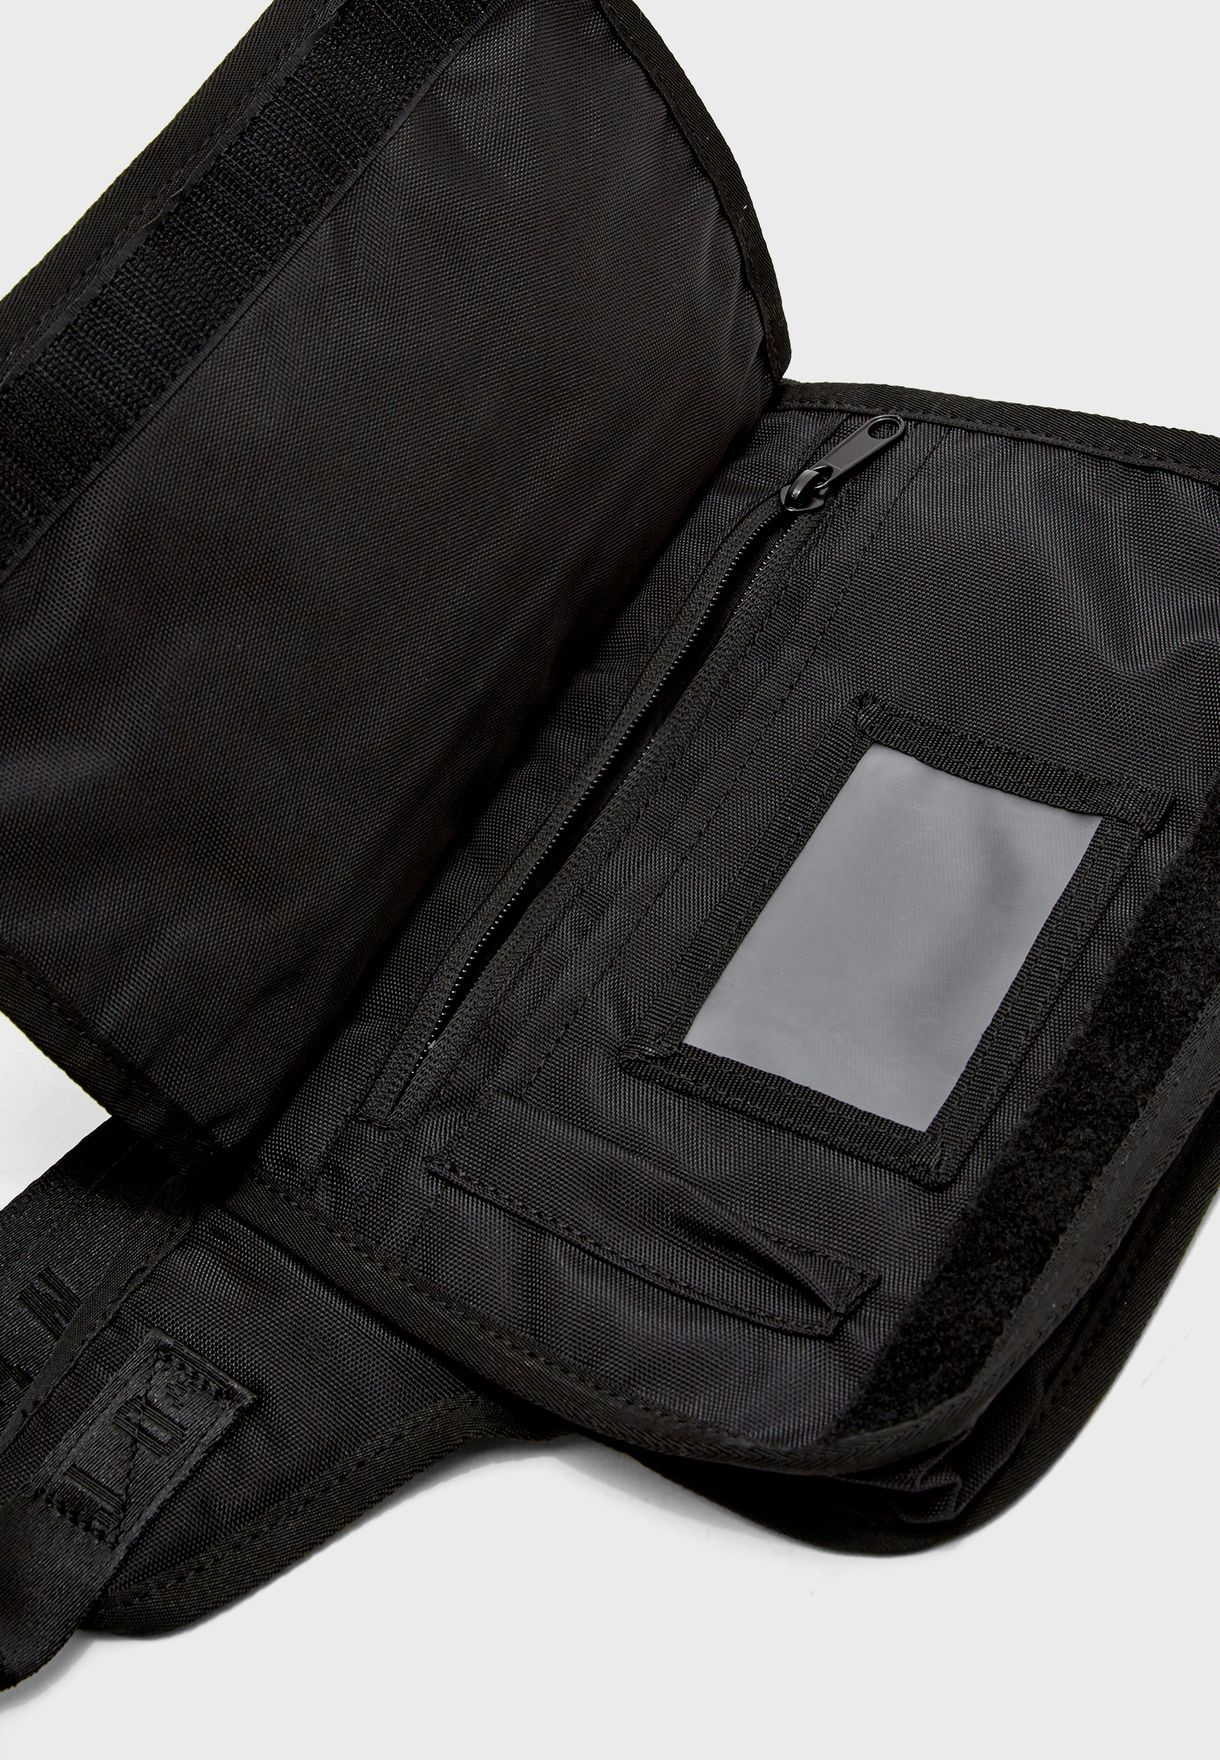 Jordan Jumpman Collaborator Waistbag